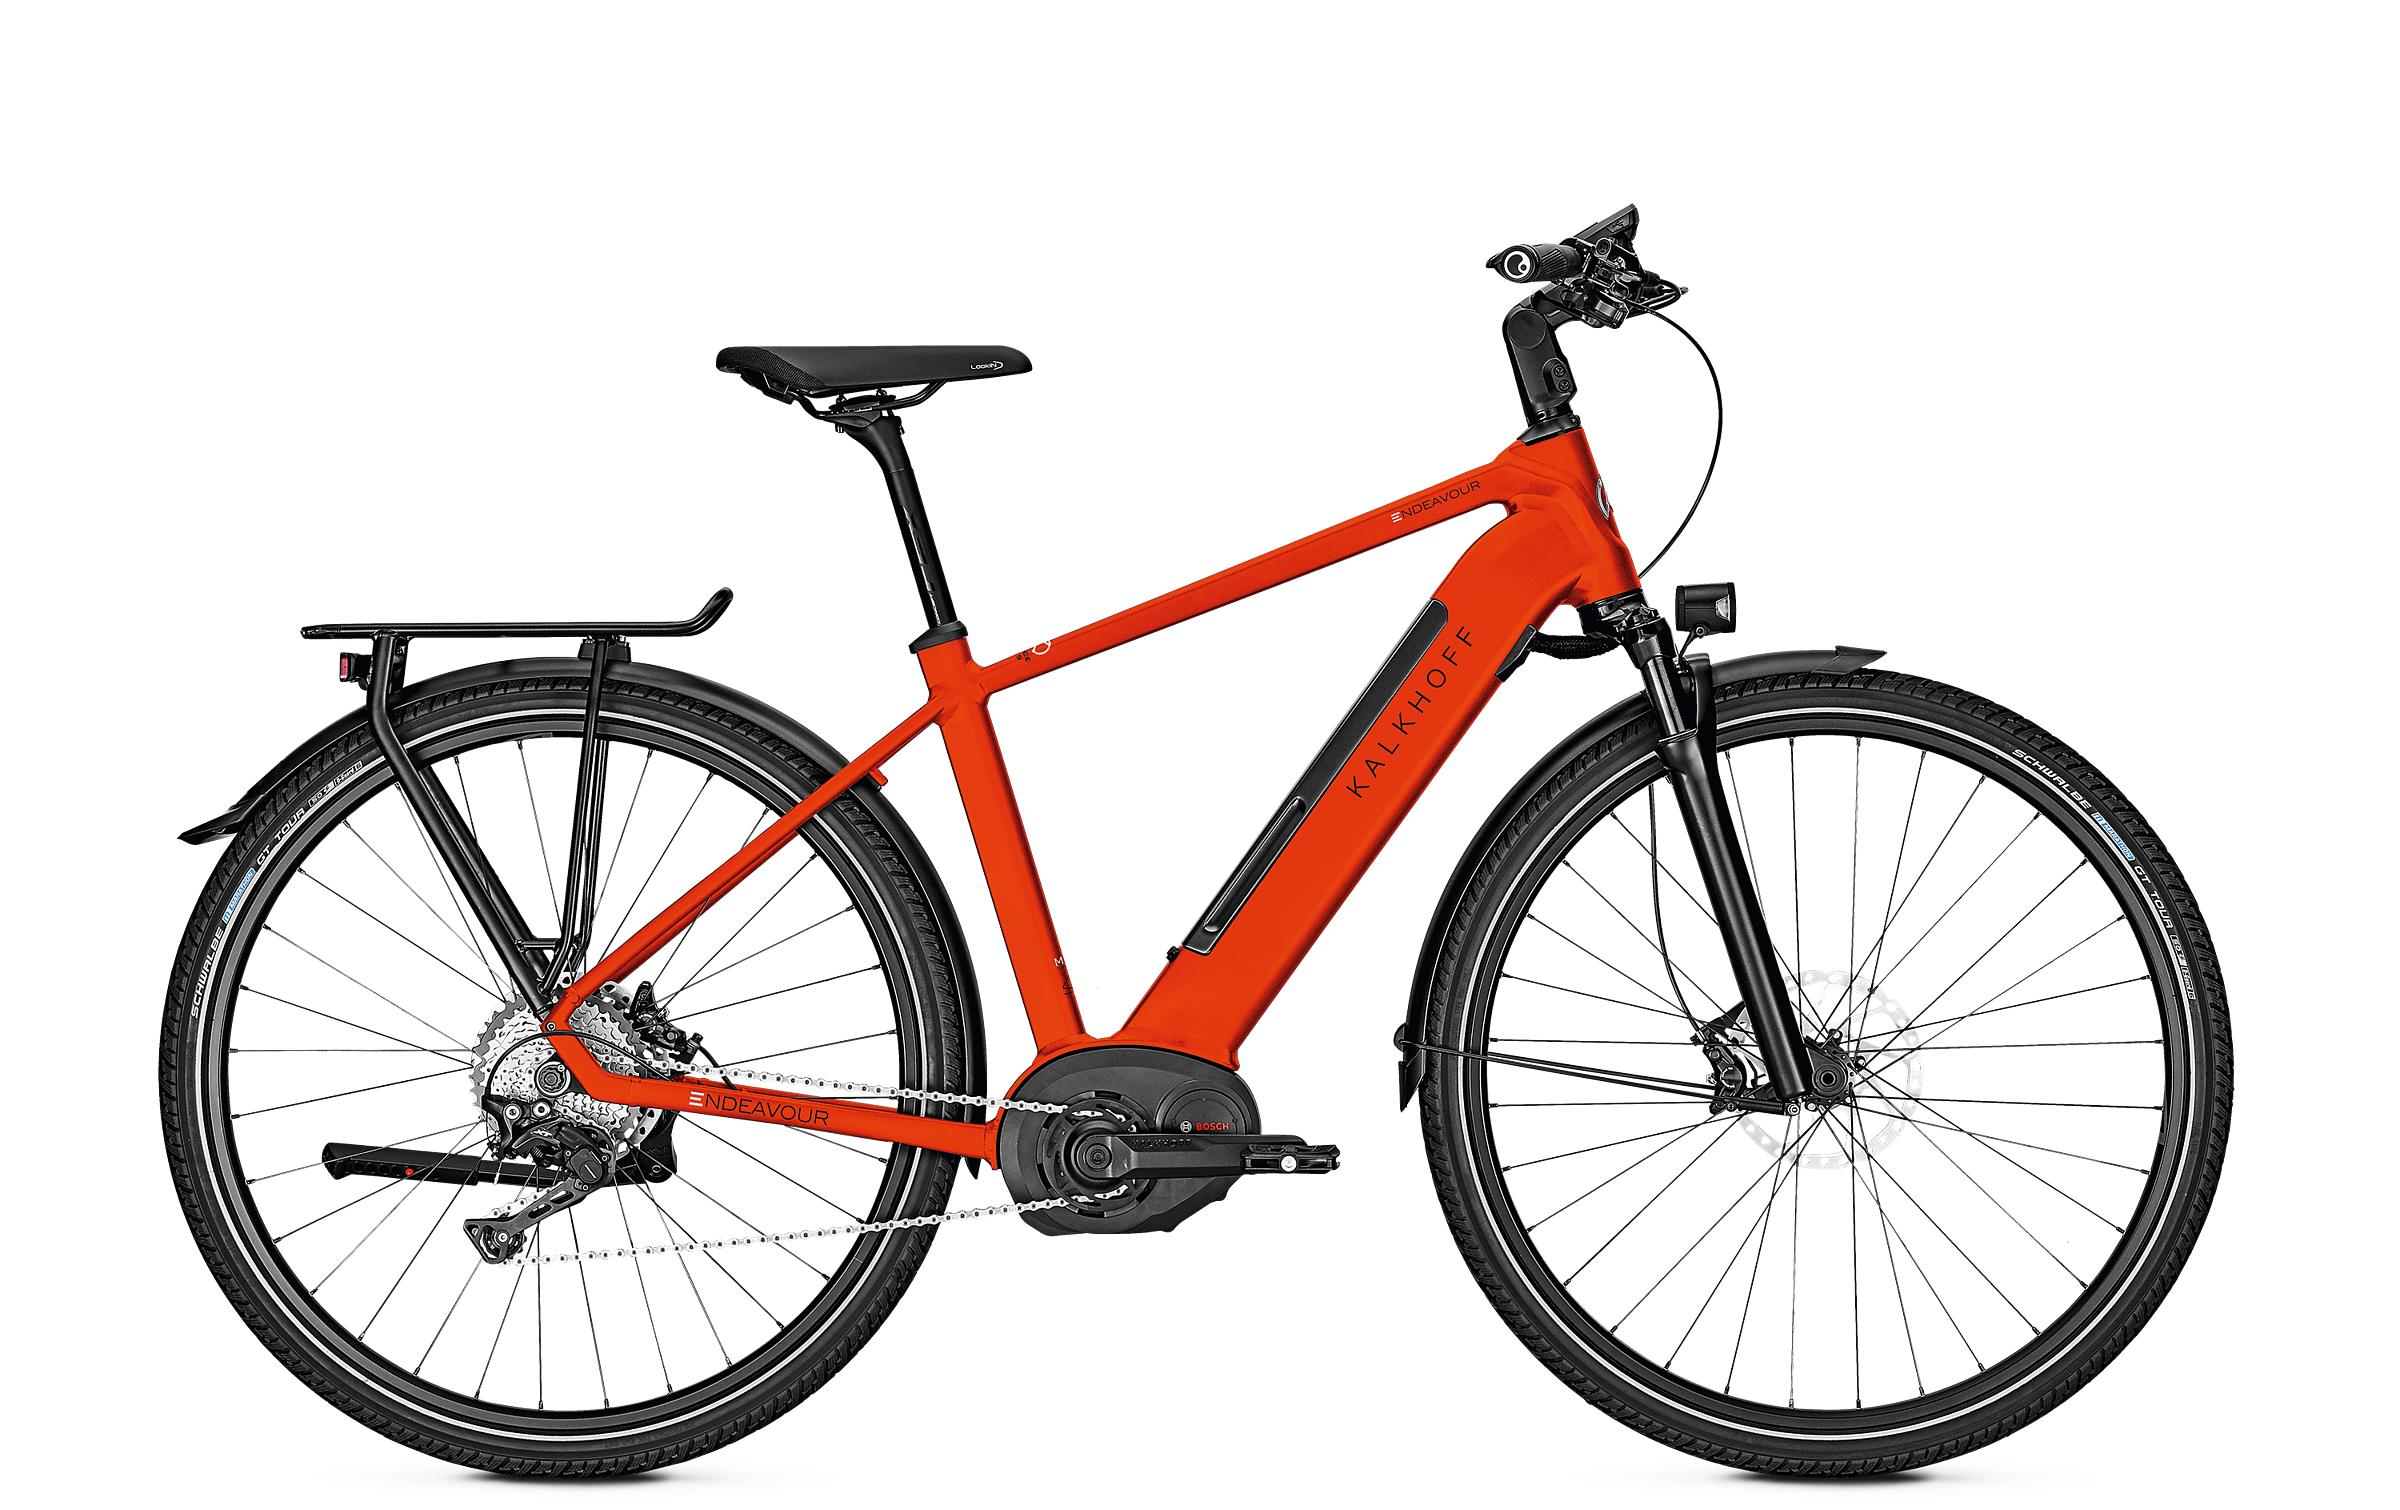 Kalkhoff ENDEAVOUR 5.B EXCITE - 28 Diamant 482 Wh -  firered glossy 2019